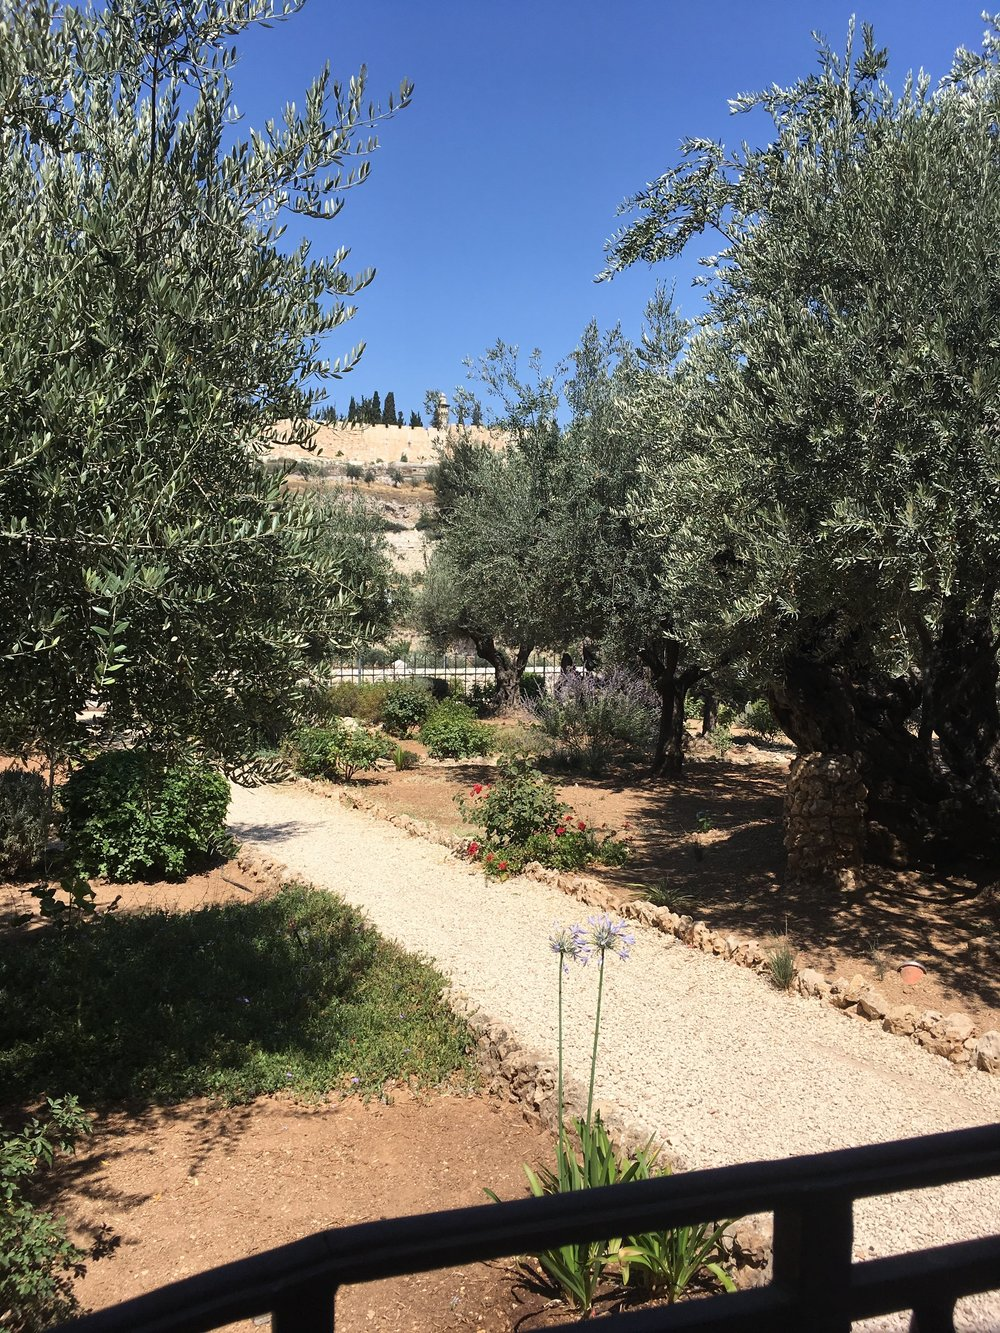 The Garden of Gethsemane, where Jesus prayed